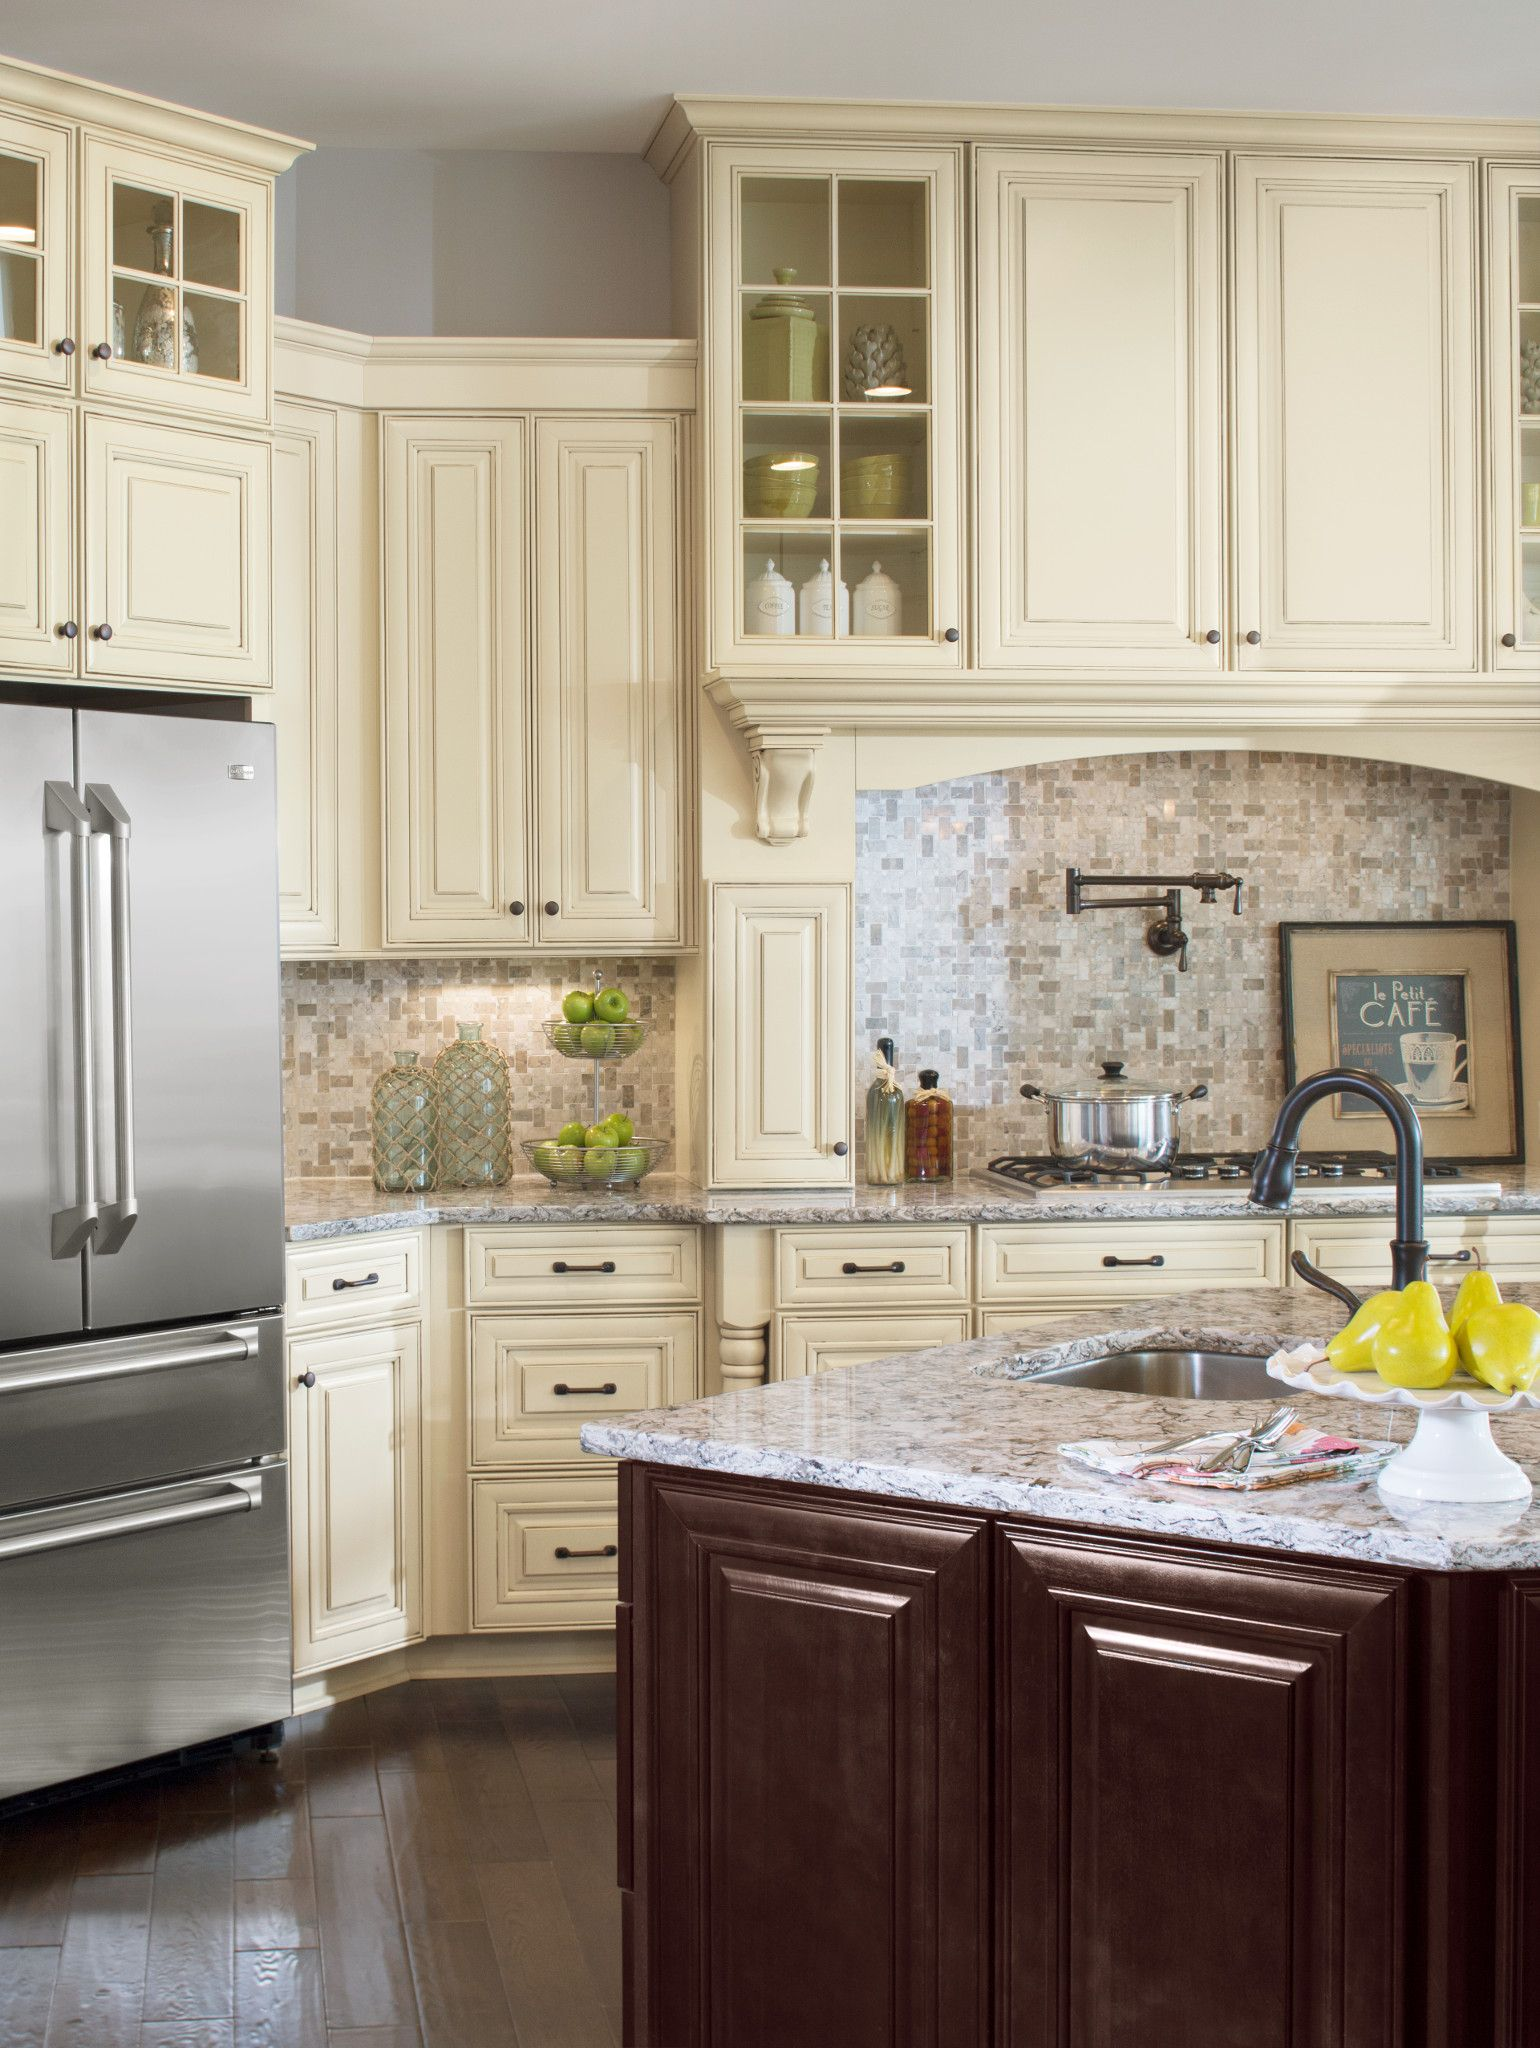 Rushmore Painted Hazelnut Cabinets From 84 Design Studios Cool Kitchen Cabinet Packages Design Ideas